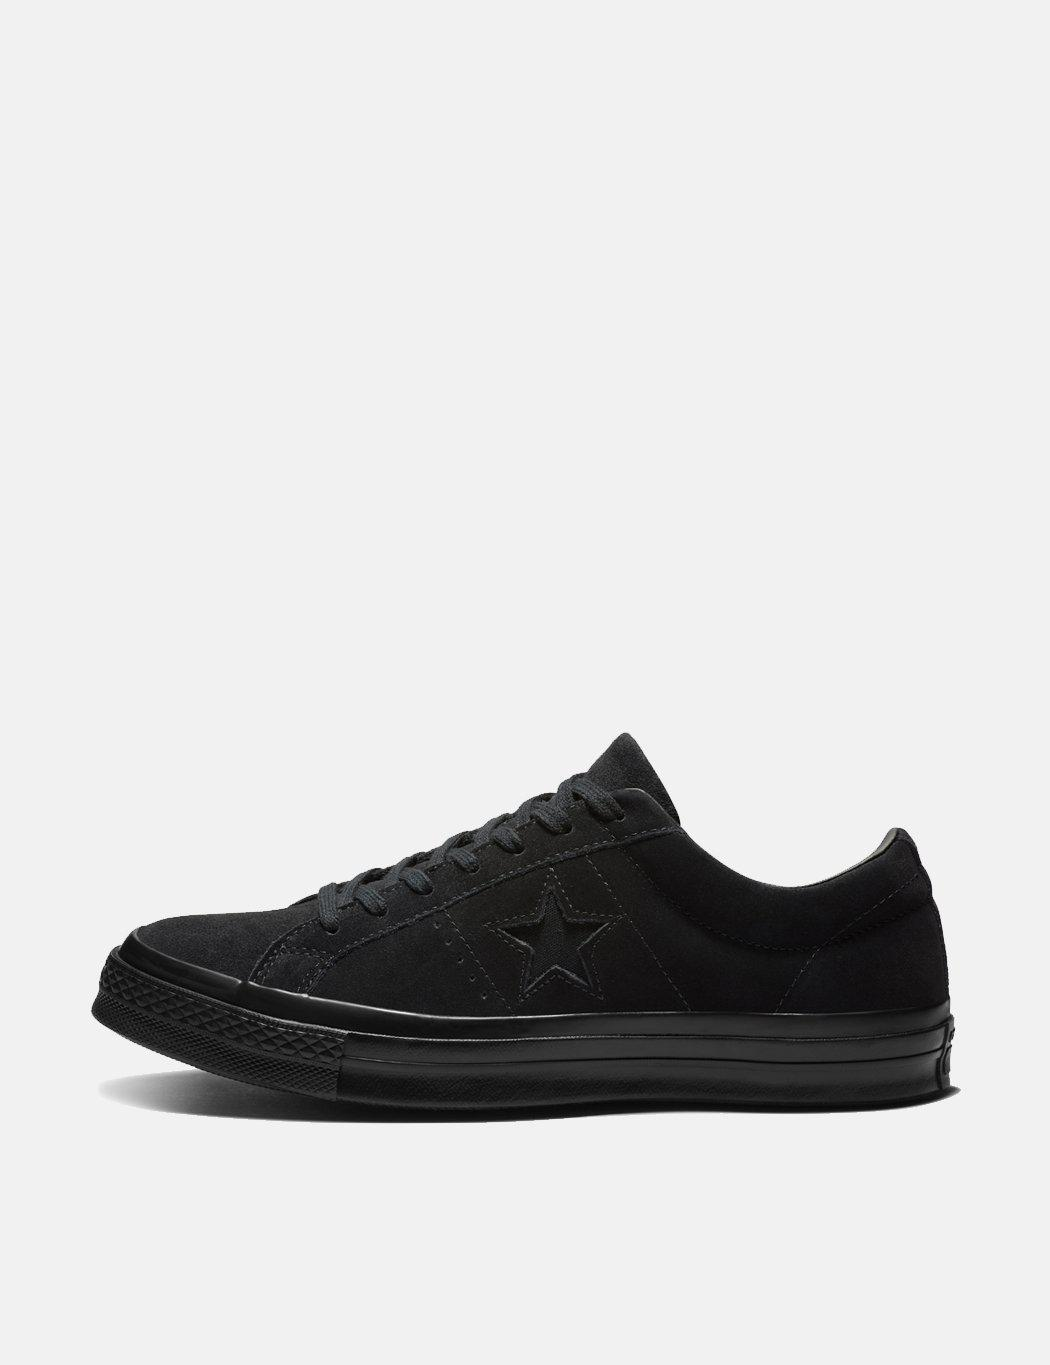 58f9cb38ea3 Lyst - Converse One Star Ox Suede Sneakers in Black for Men - Save 77%